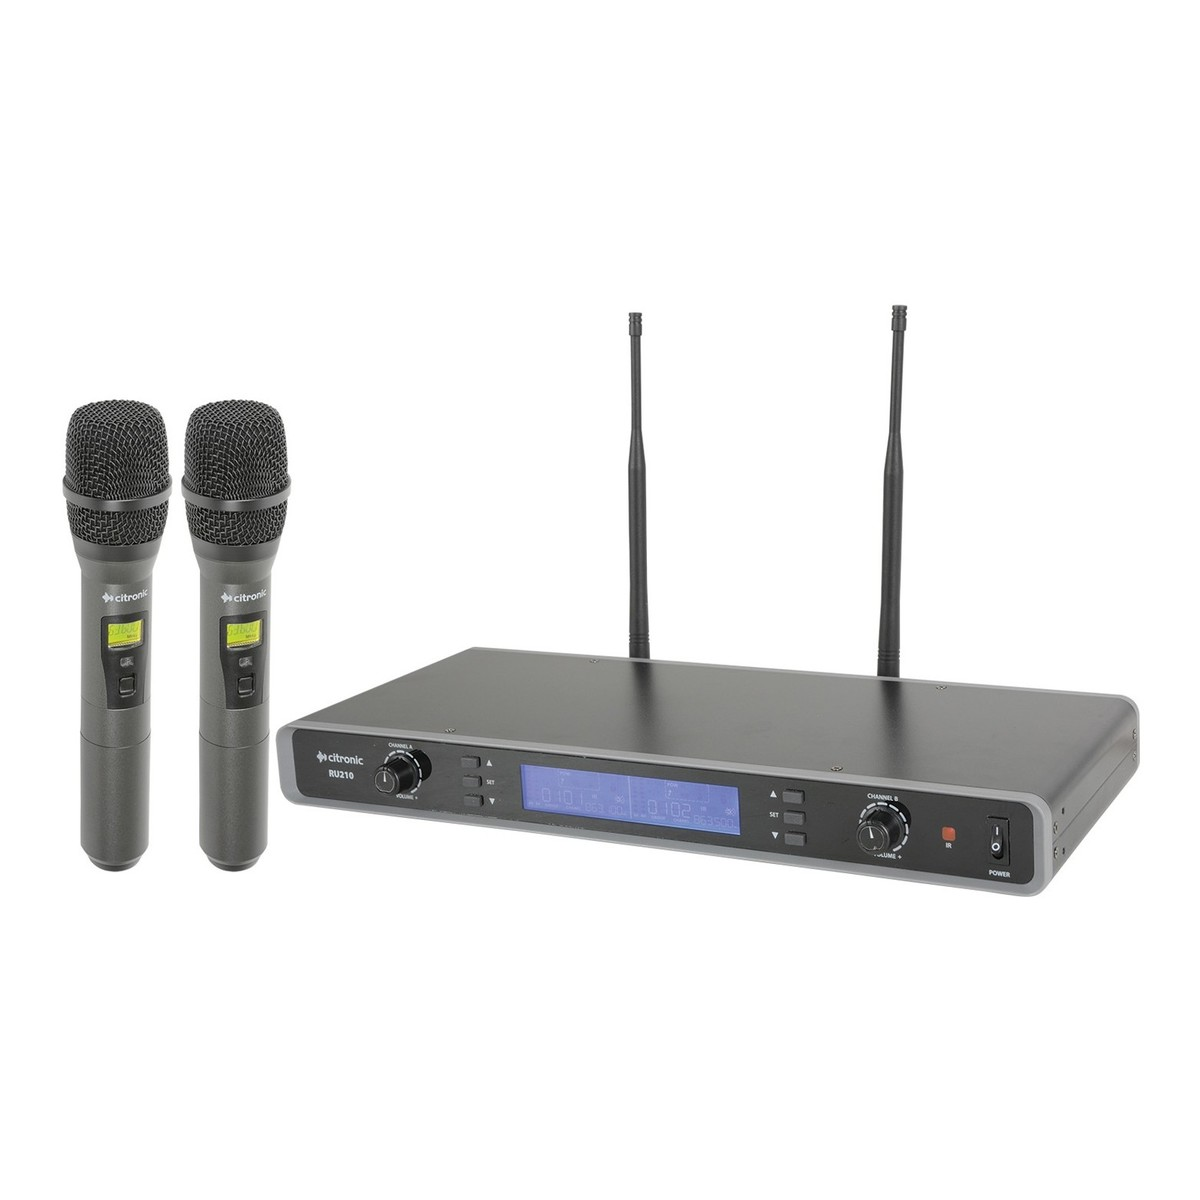 citronic ru210 h dual wireless handheld microphone system at gear4music. Black Bedroom Furniture Sets. Home Design Ideas